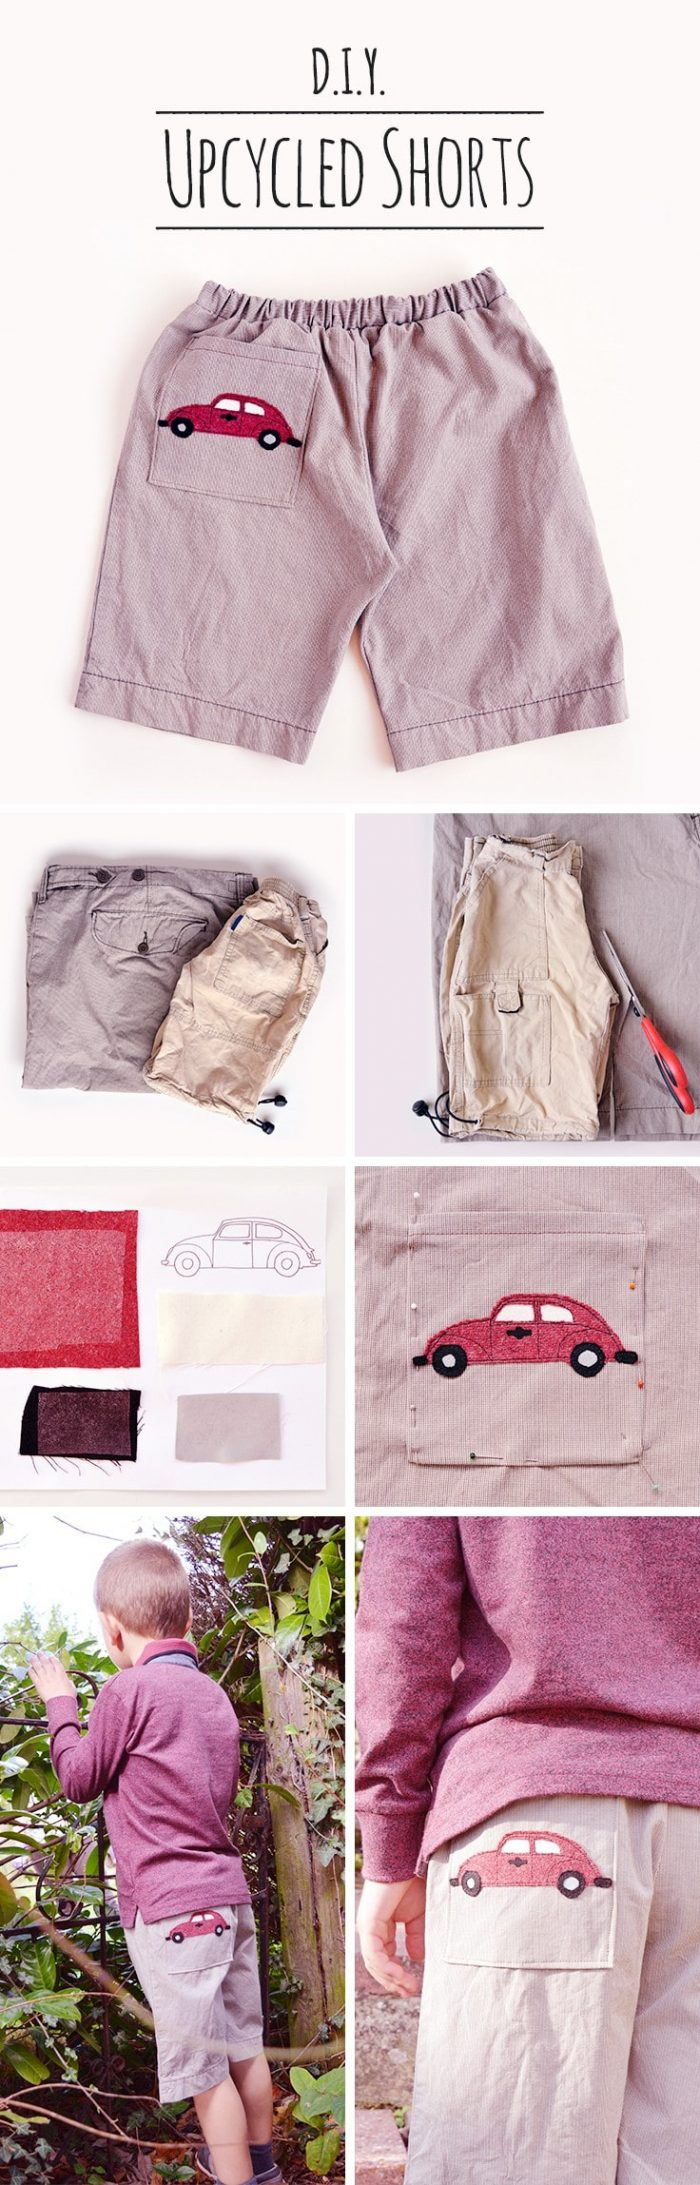 Sew your own beetle shorts, create your own shorts pattern (sponsored by Volkswagen)